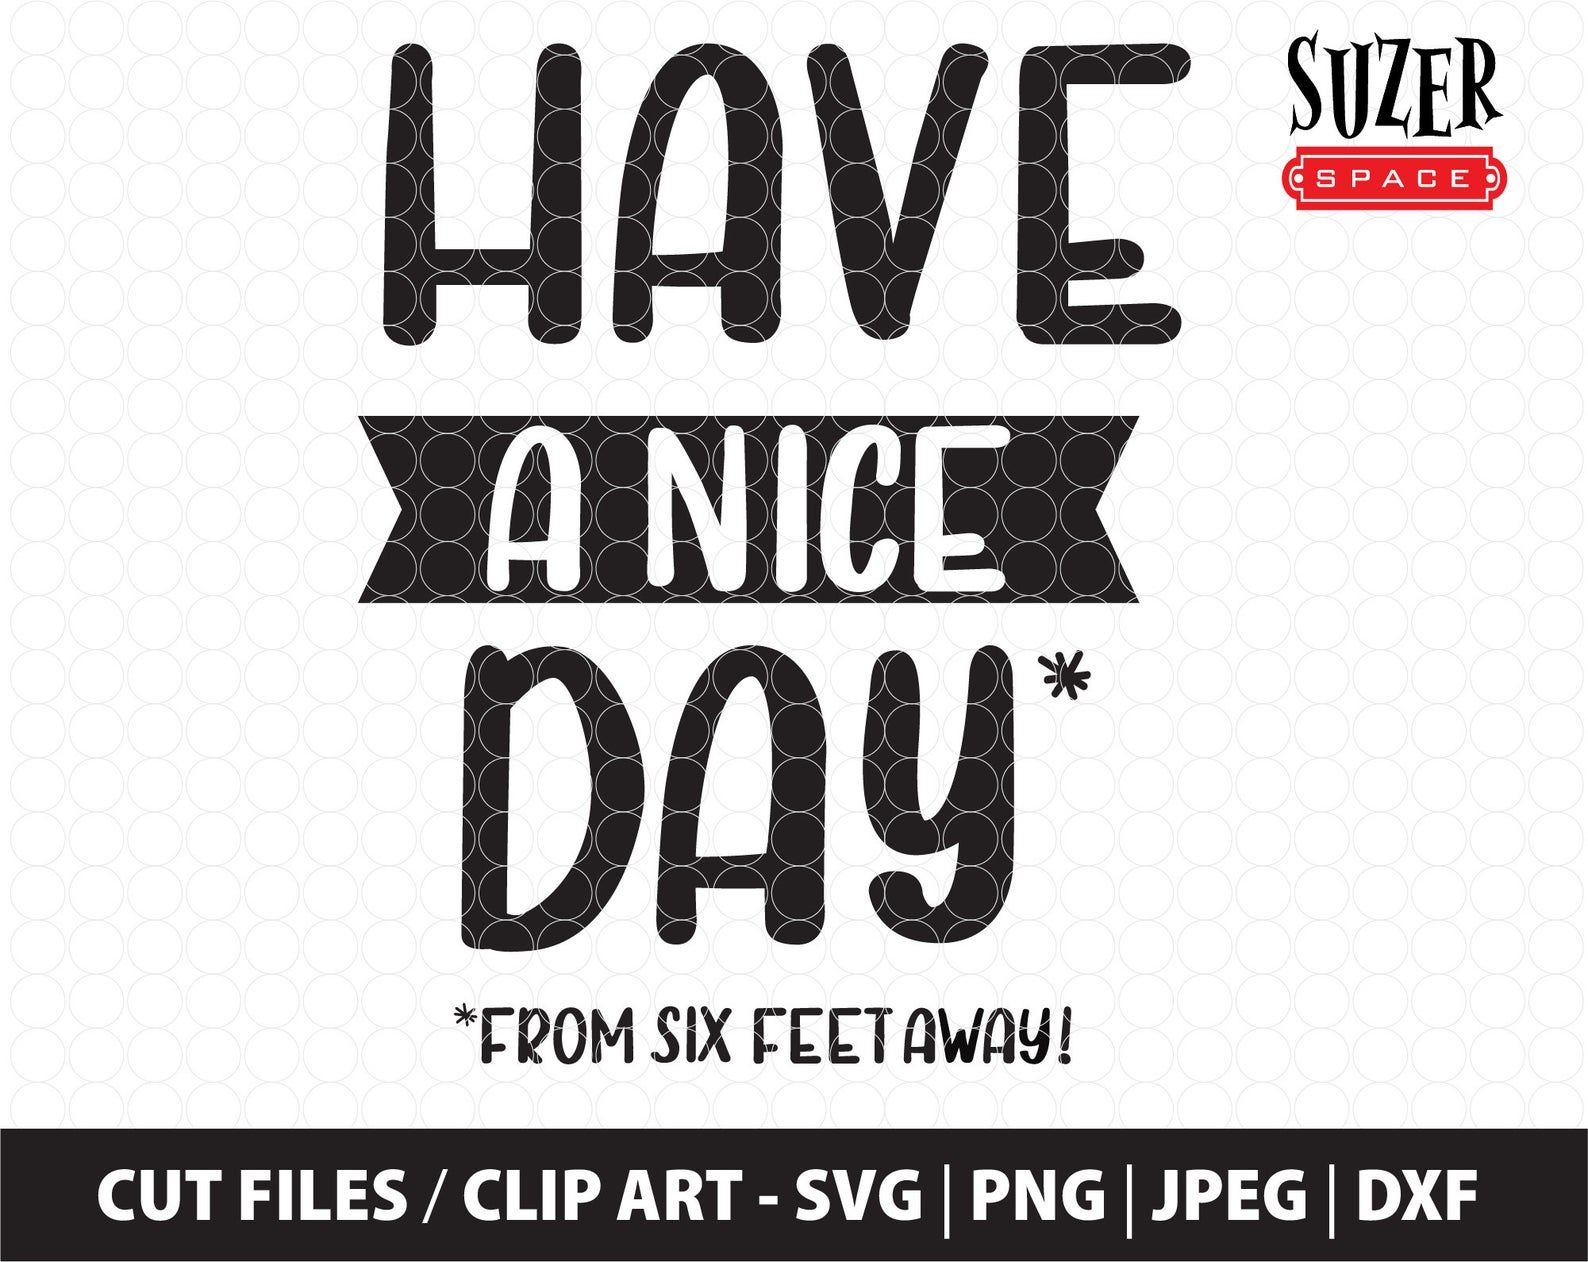 Have A Nice Day Svg Design Have A Nice Day From Six Feet Away Etsy In 2021 Paper Cutout Lettering Design Lettering